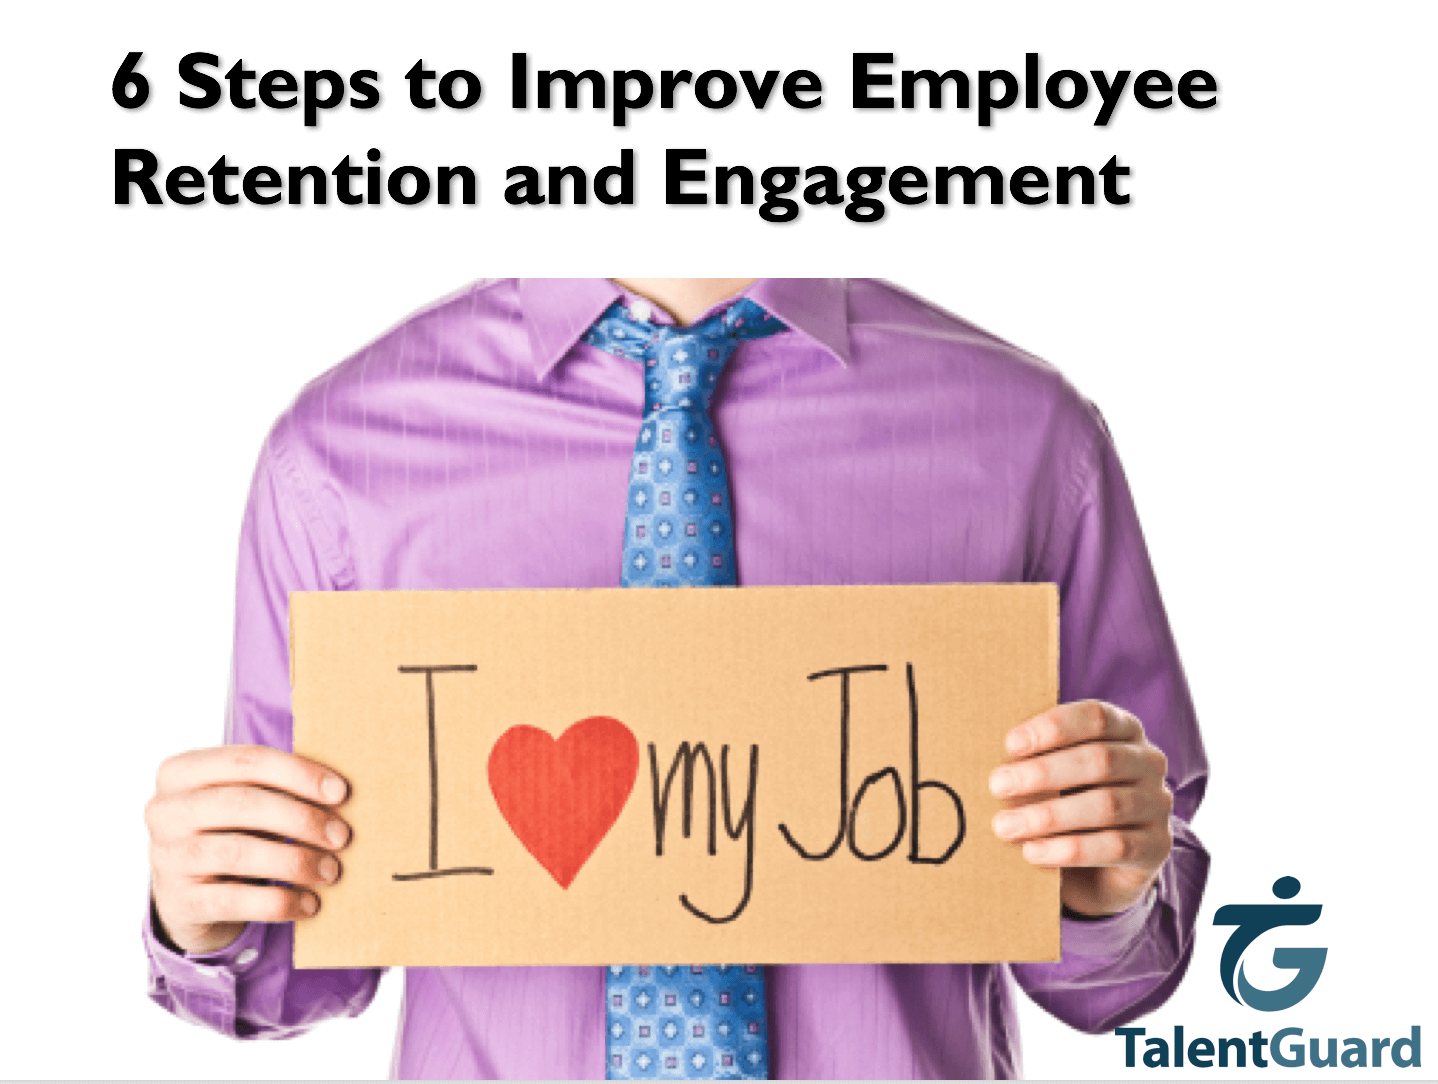 6 Steps to Improve Employee Retention and Engagement